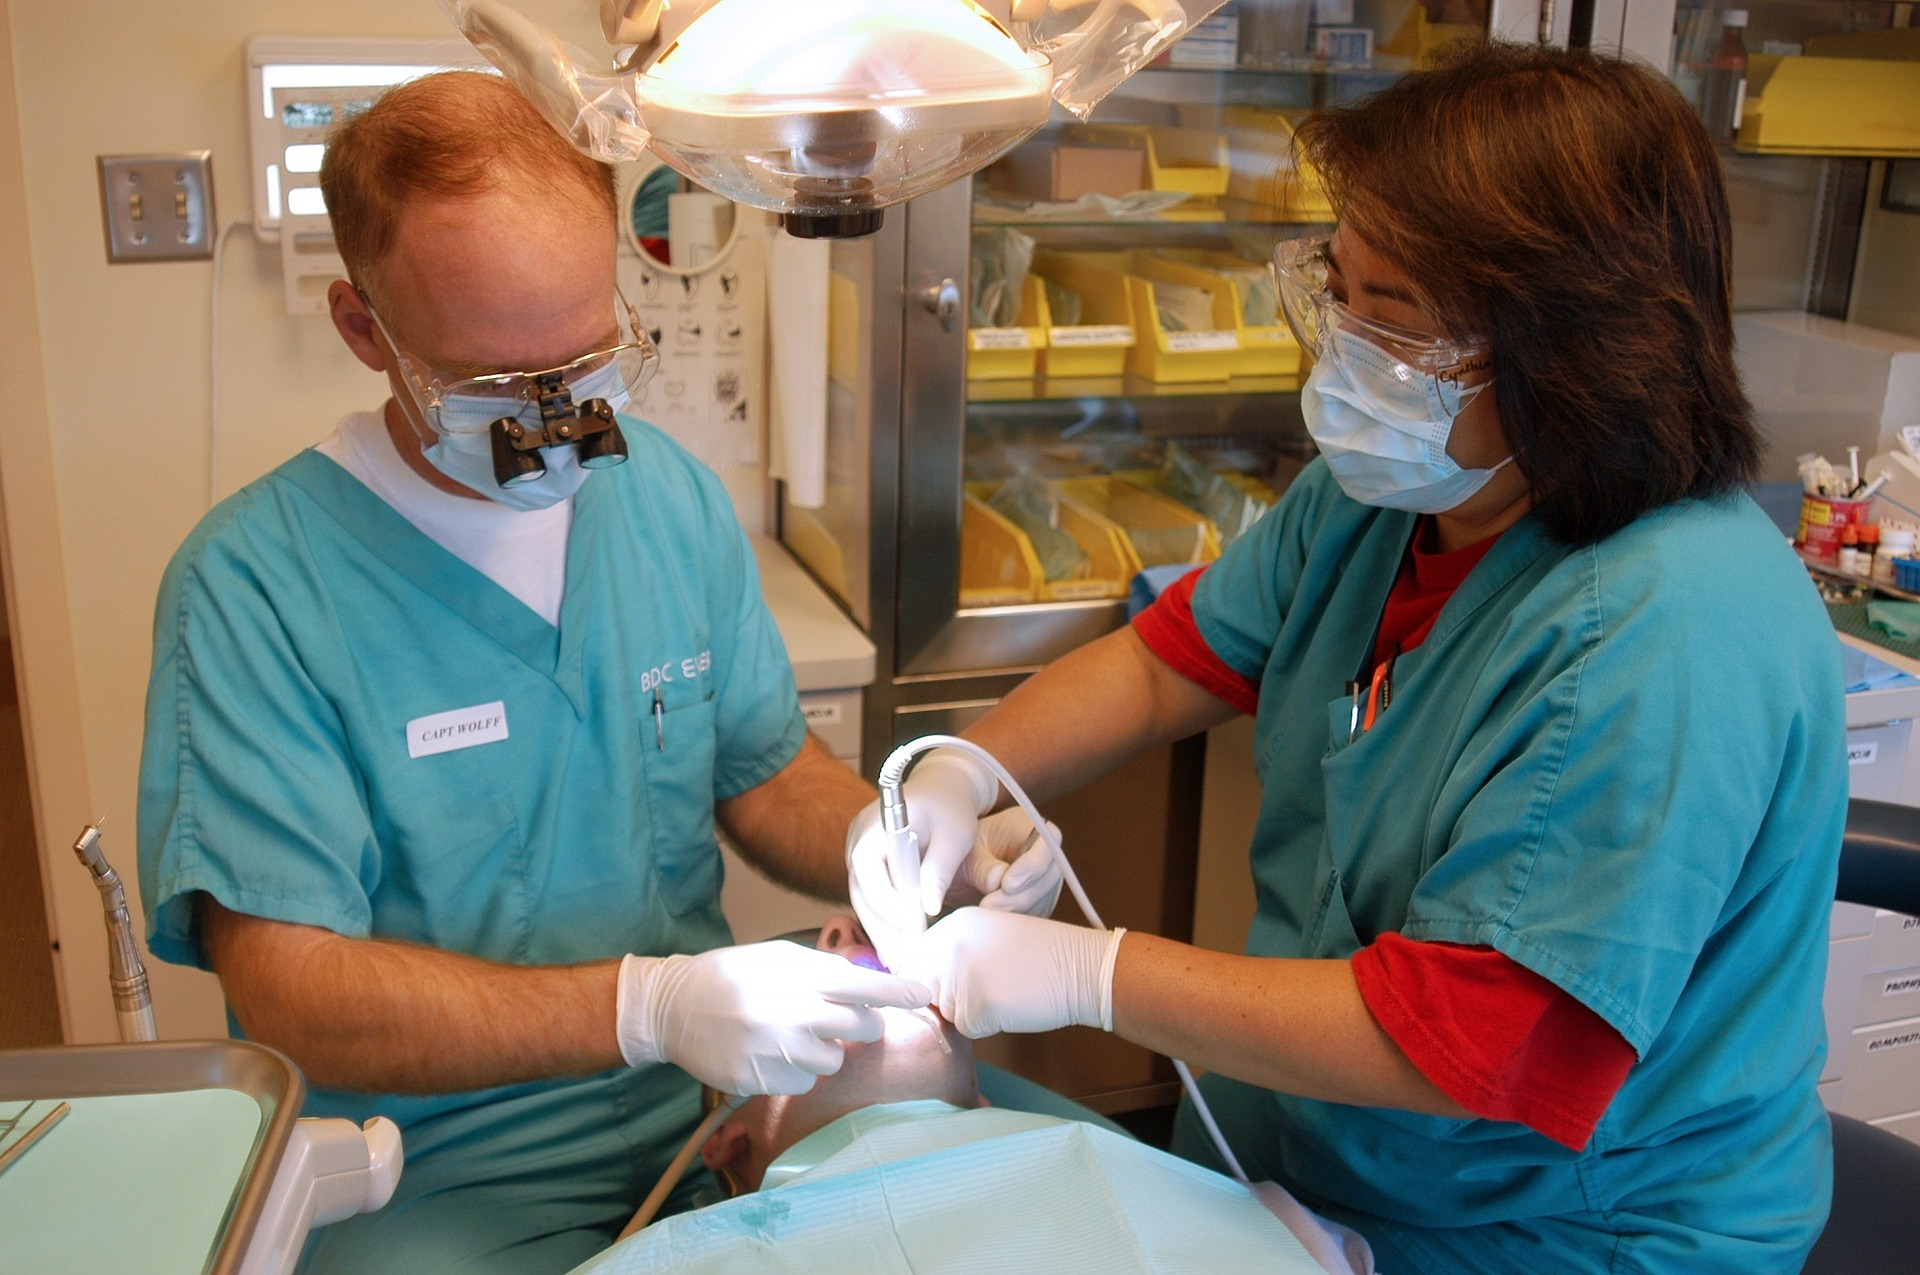 dental experts work as a team